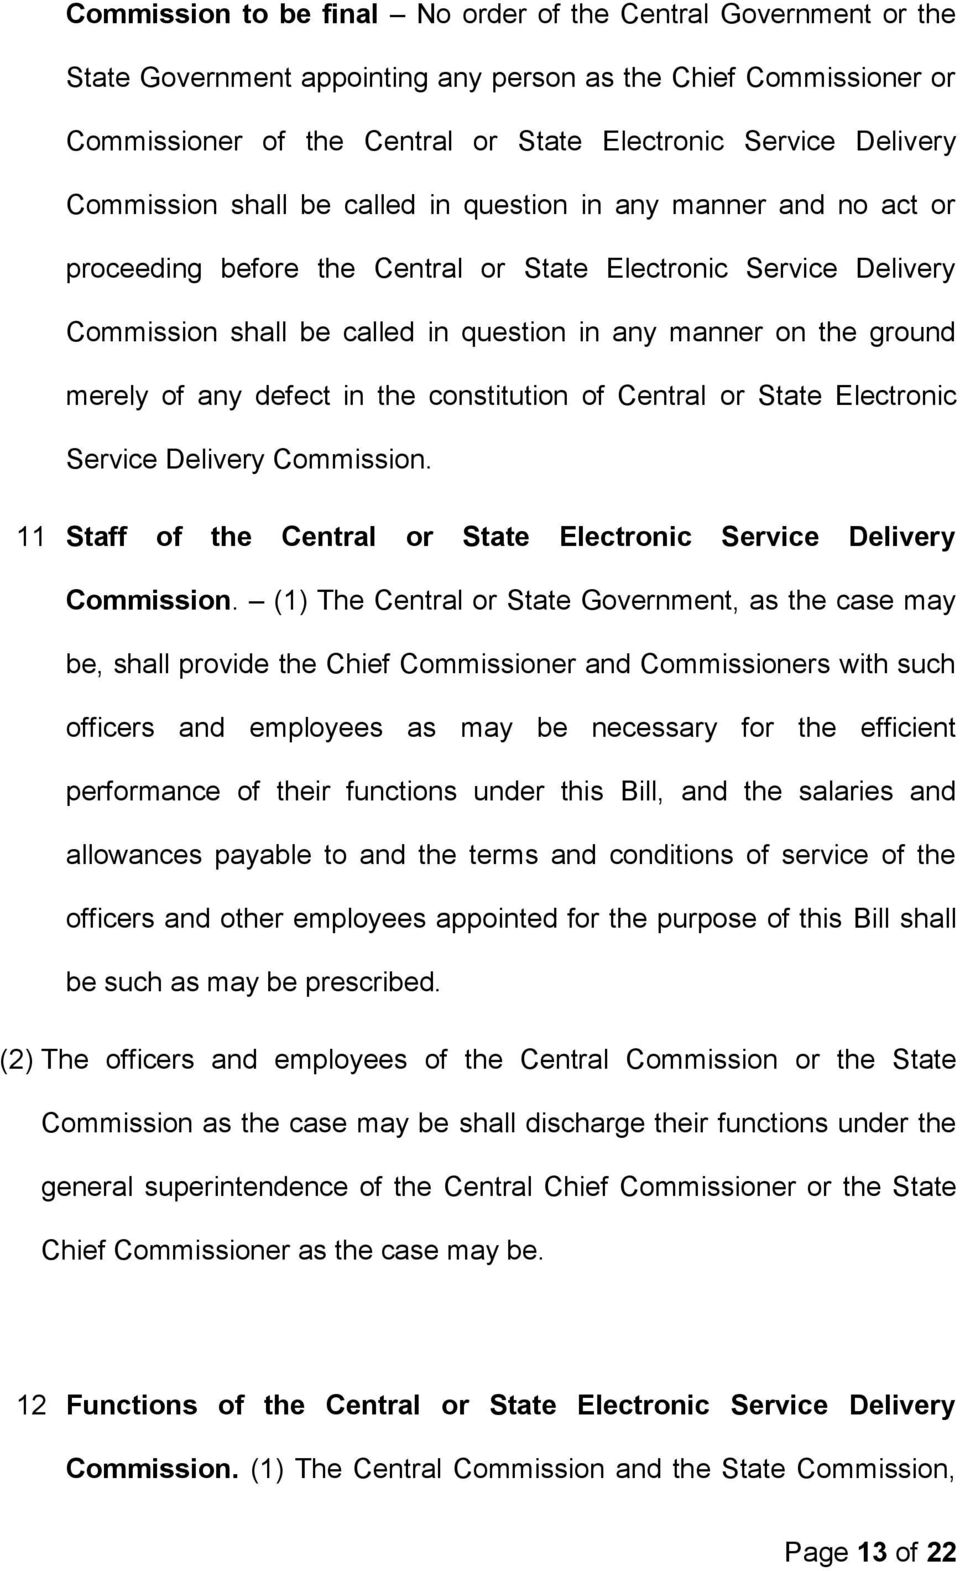 ground merely of any defect in the constitution of Central or State Electronic Service Delivery Commission. 11 Staff of the Central or State Electronic Service Delivery Commission.